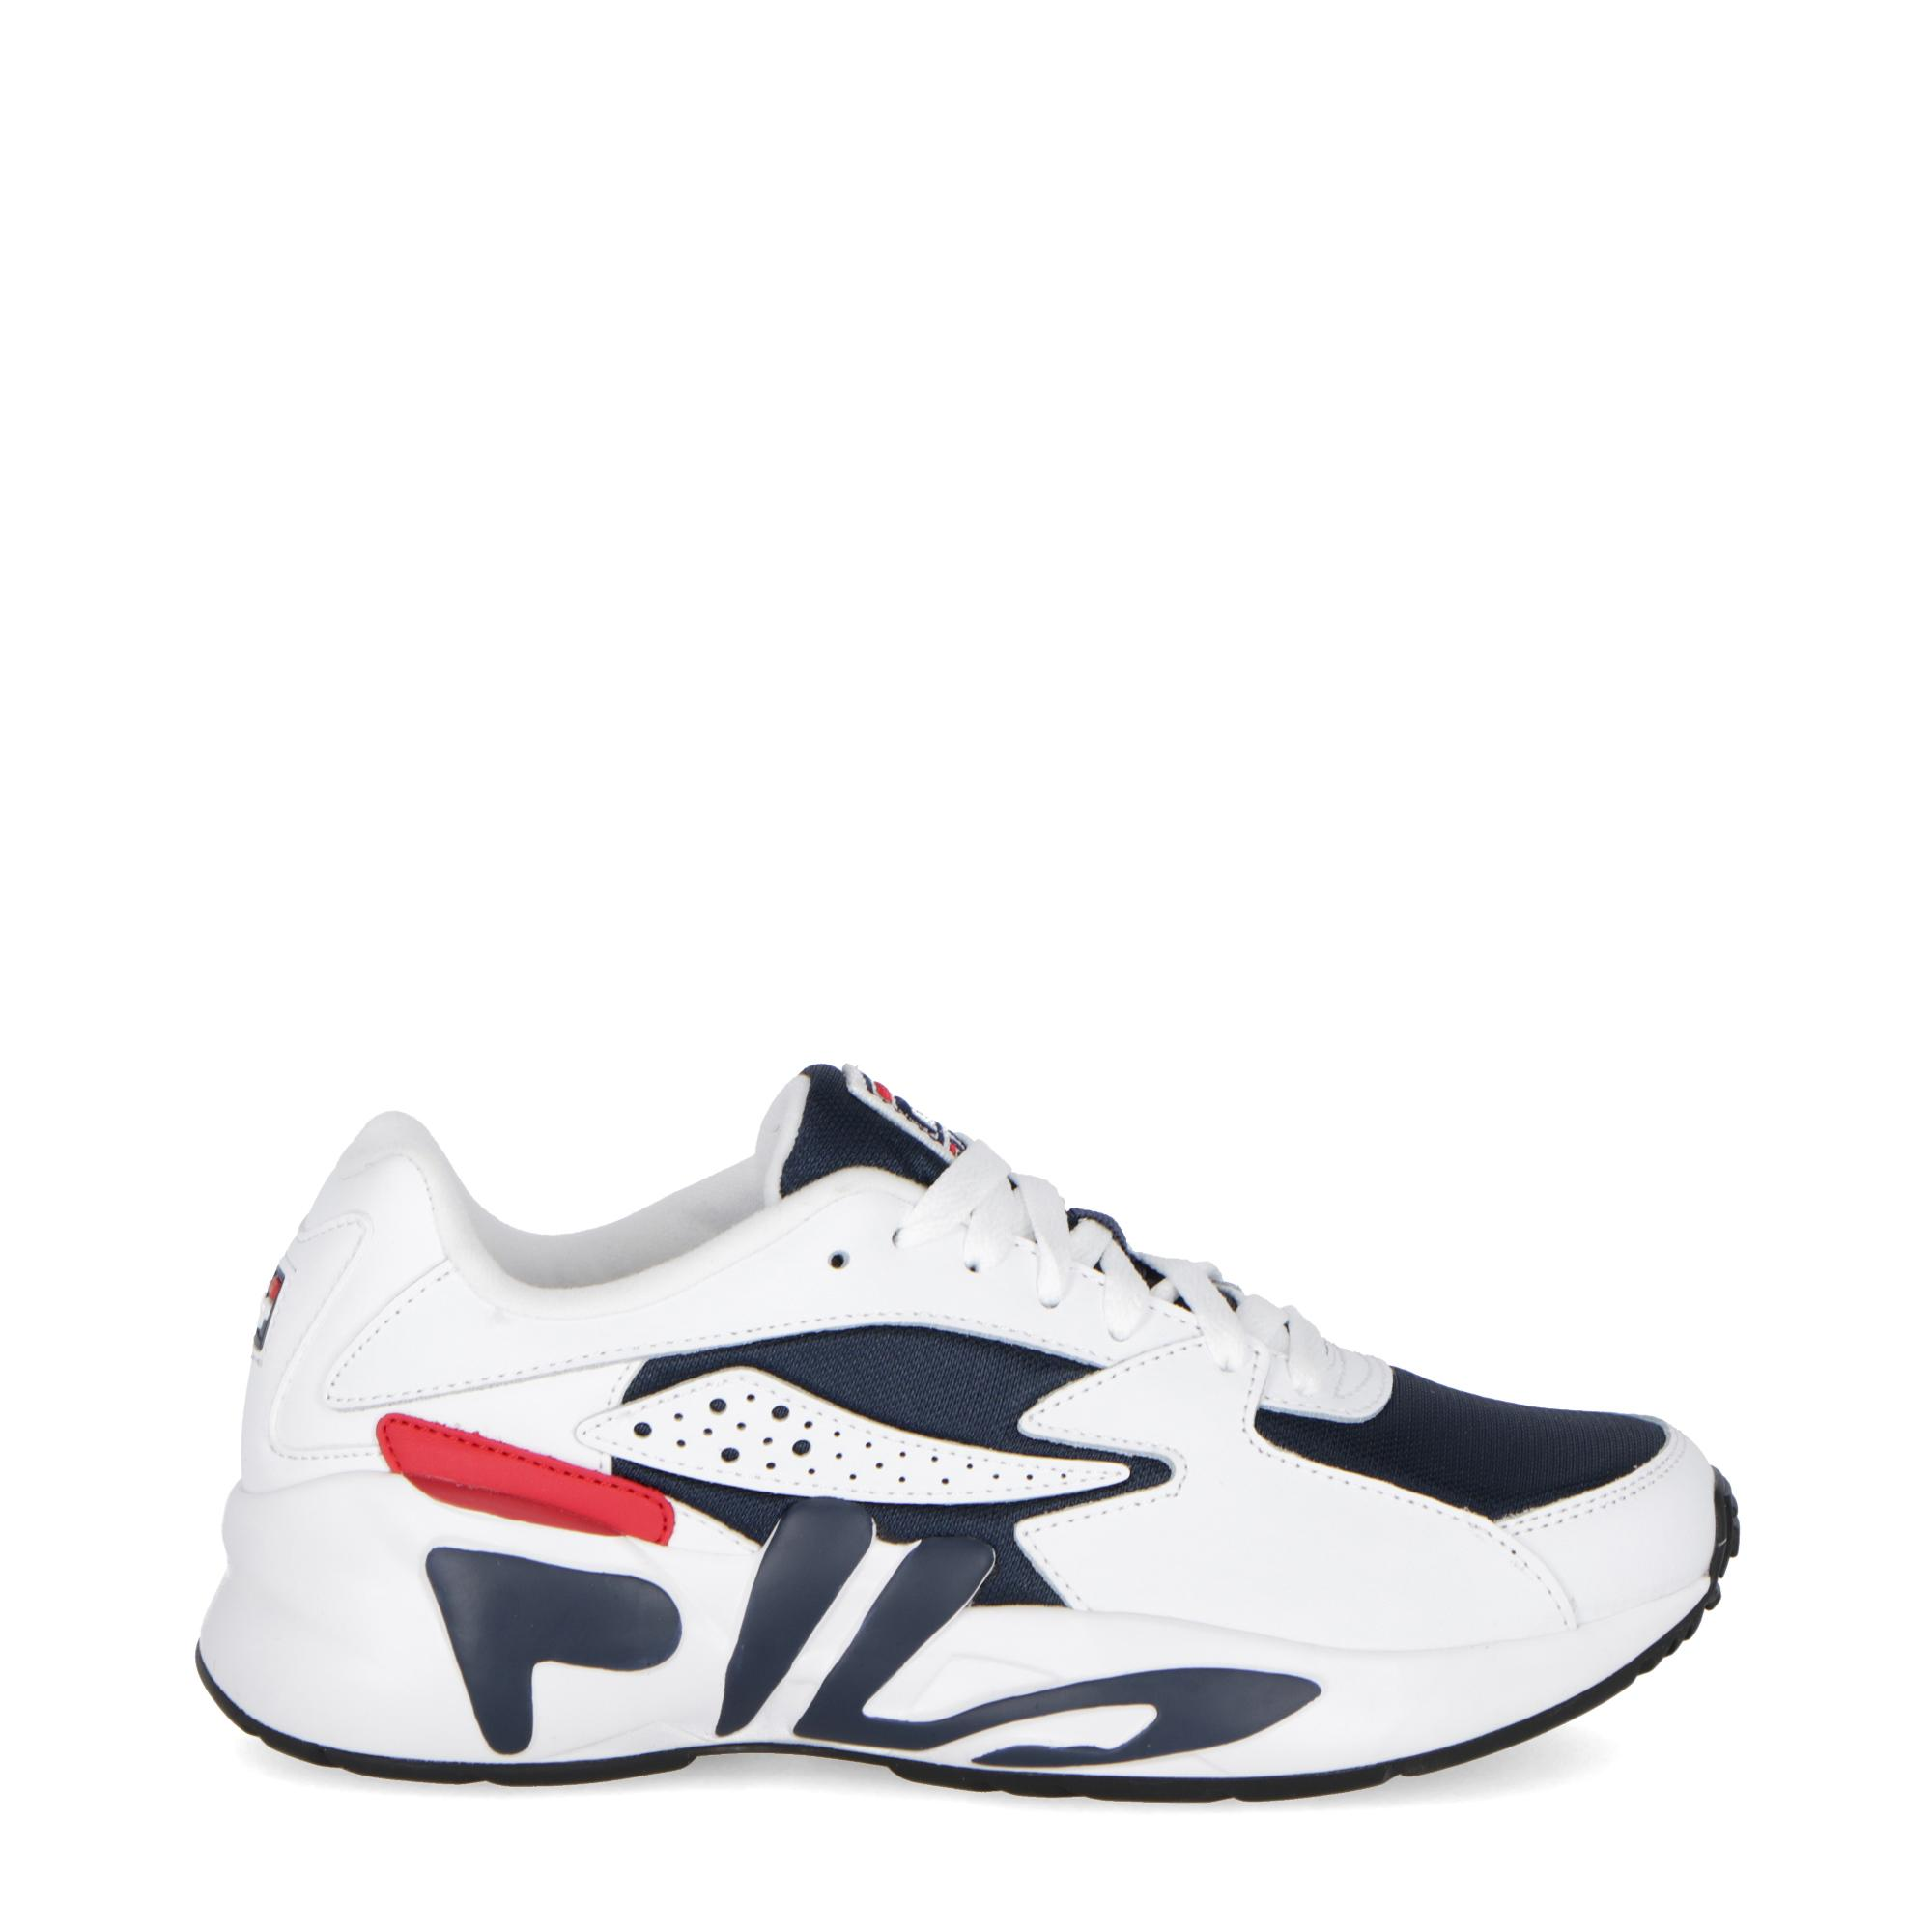 863d0a8b8859 Fila Mindblower Navy White Red